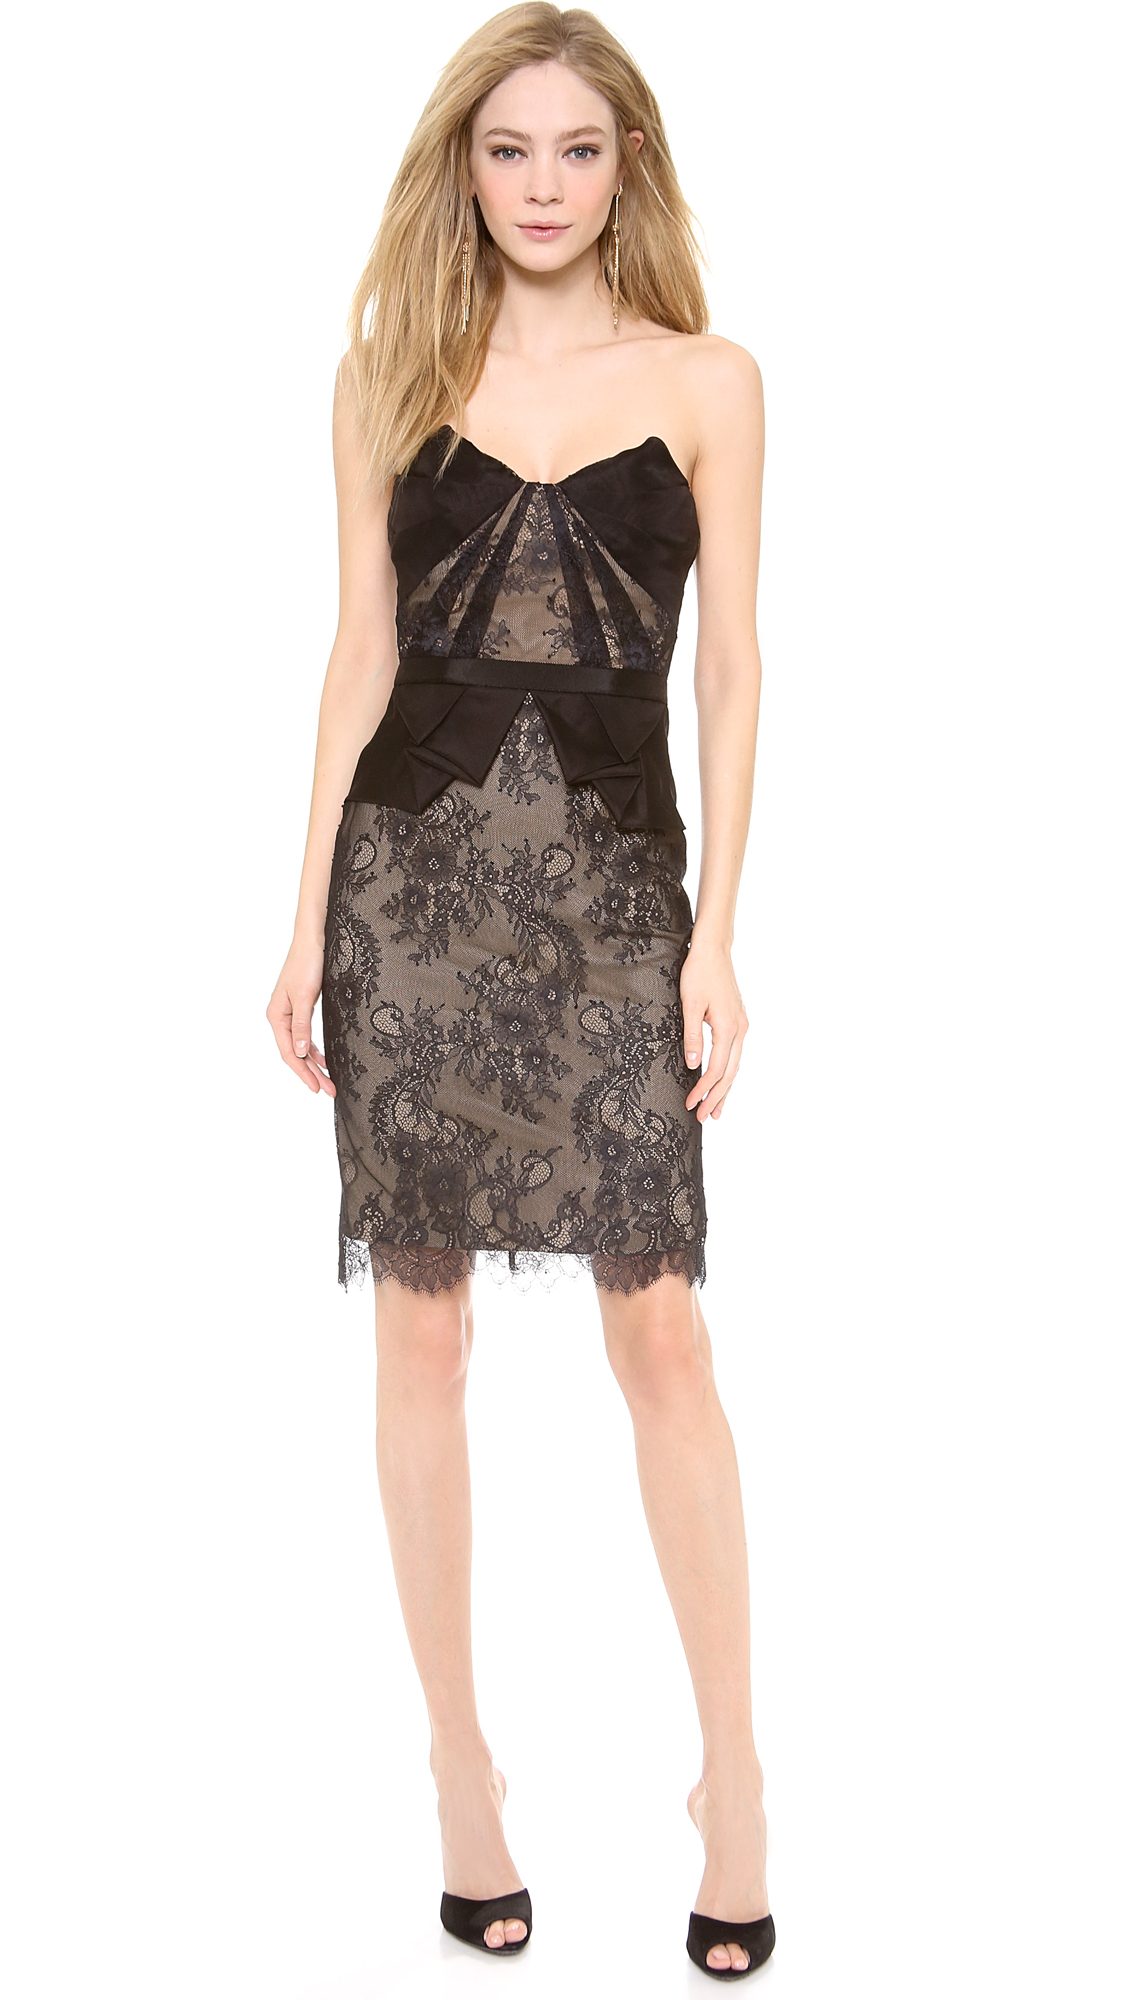 Notte By Marchesa Strapless Lace Cocktail Dress in Black ...